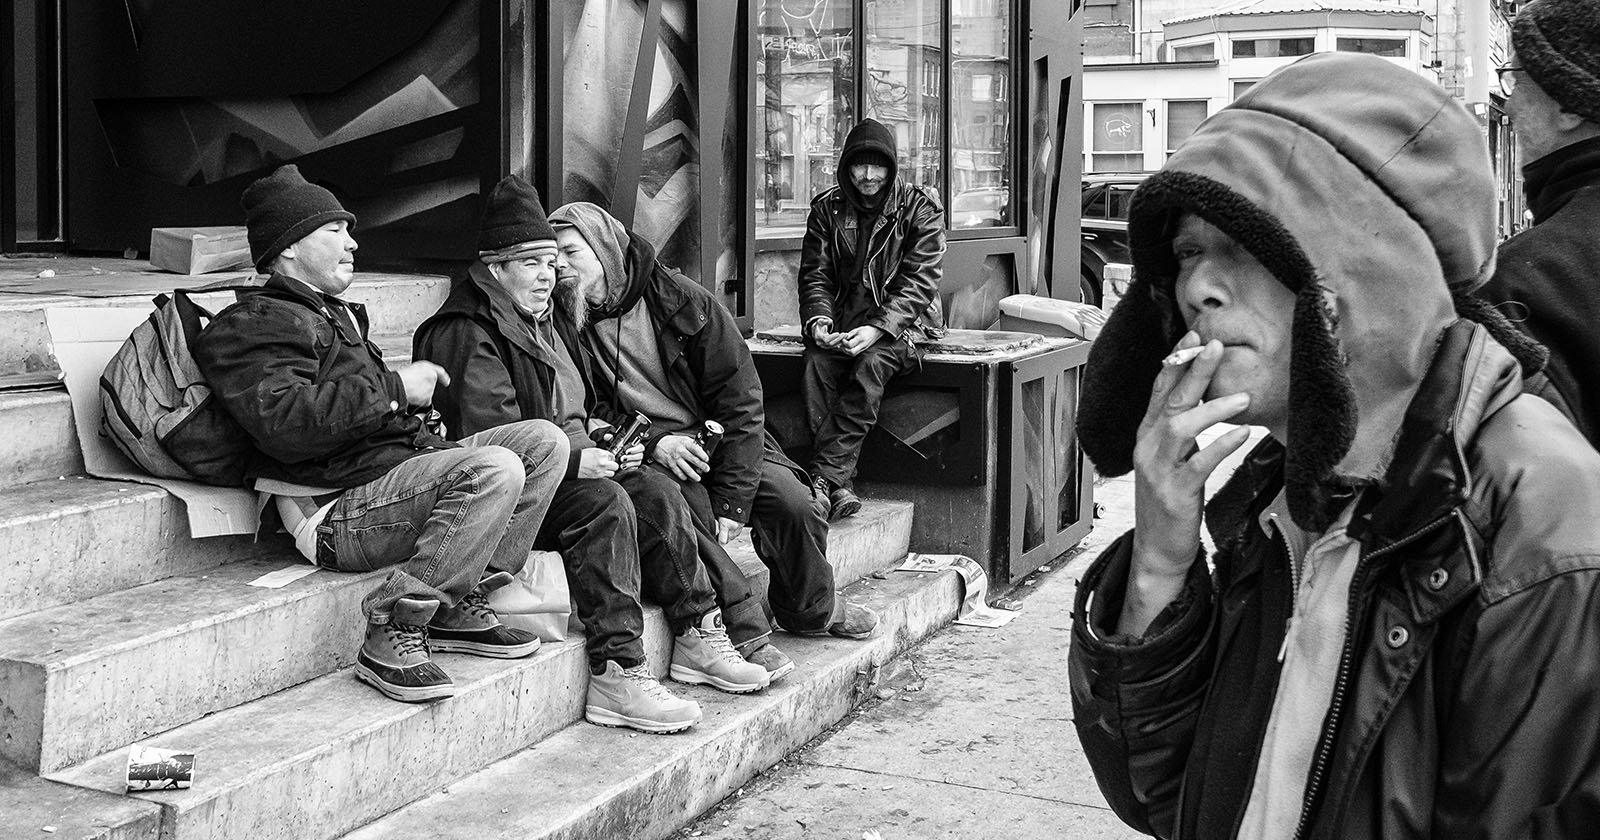 The Art of De-escalation in Street Photography